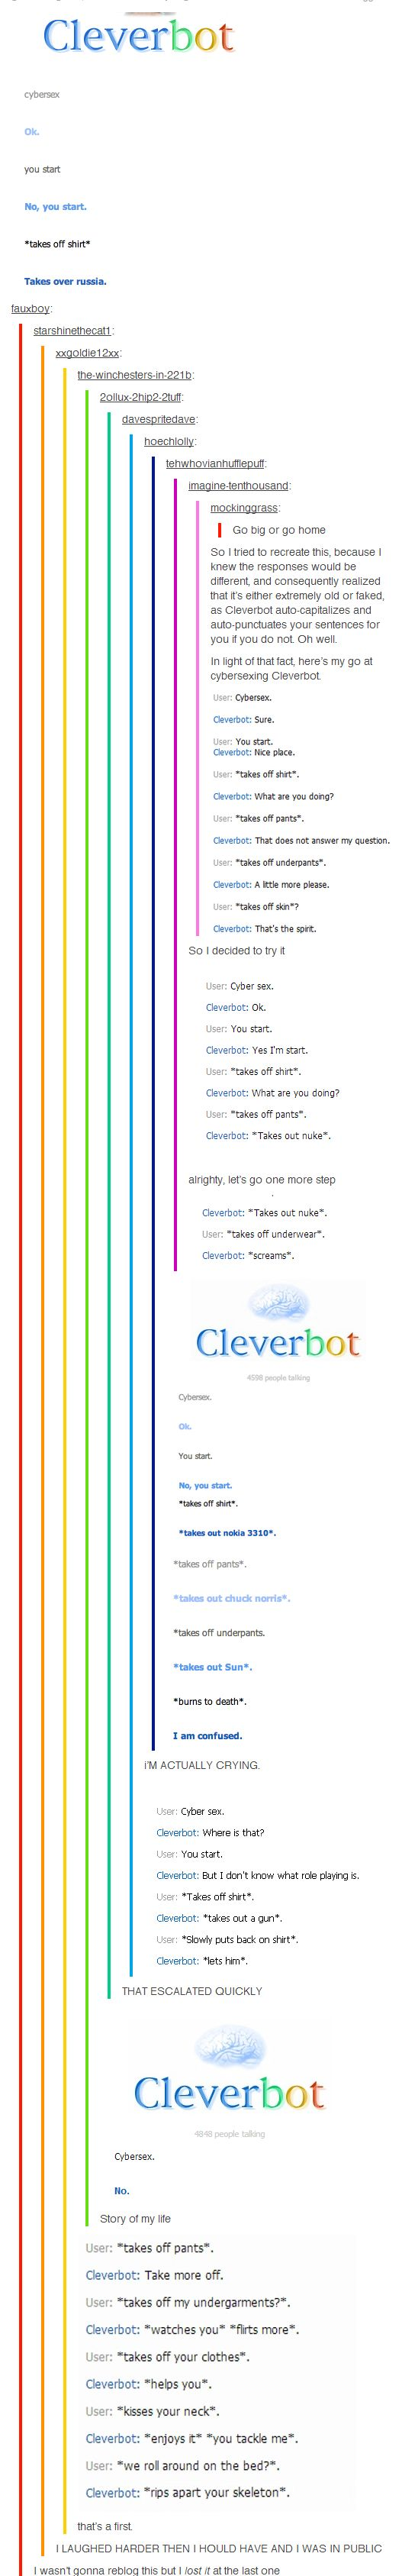 I completely lost it. Cleverbot you dirty weirdo.